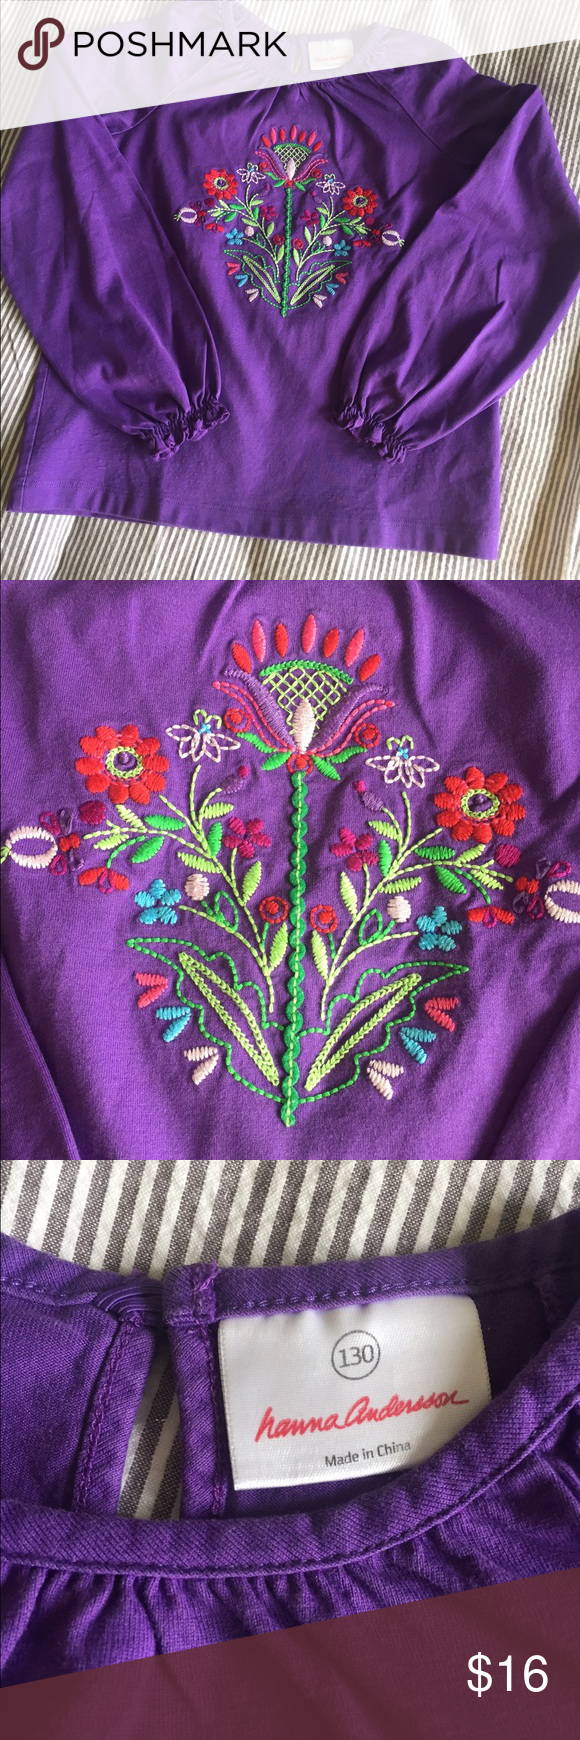 Hanna Andersson Appliqué Tee Gorgeous girls Appliqué long sleeve with sweet gathering/ruffle at wrists. Hanna size 130. US about size 8/10. Matching turquoise ruffled skort also posted. EUC. No stains or holes. Hanna Andersson Shirts & Tops Tees - Long Sleeve